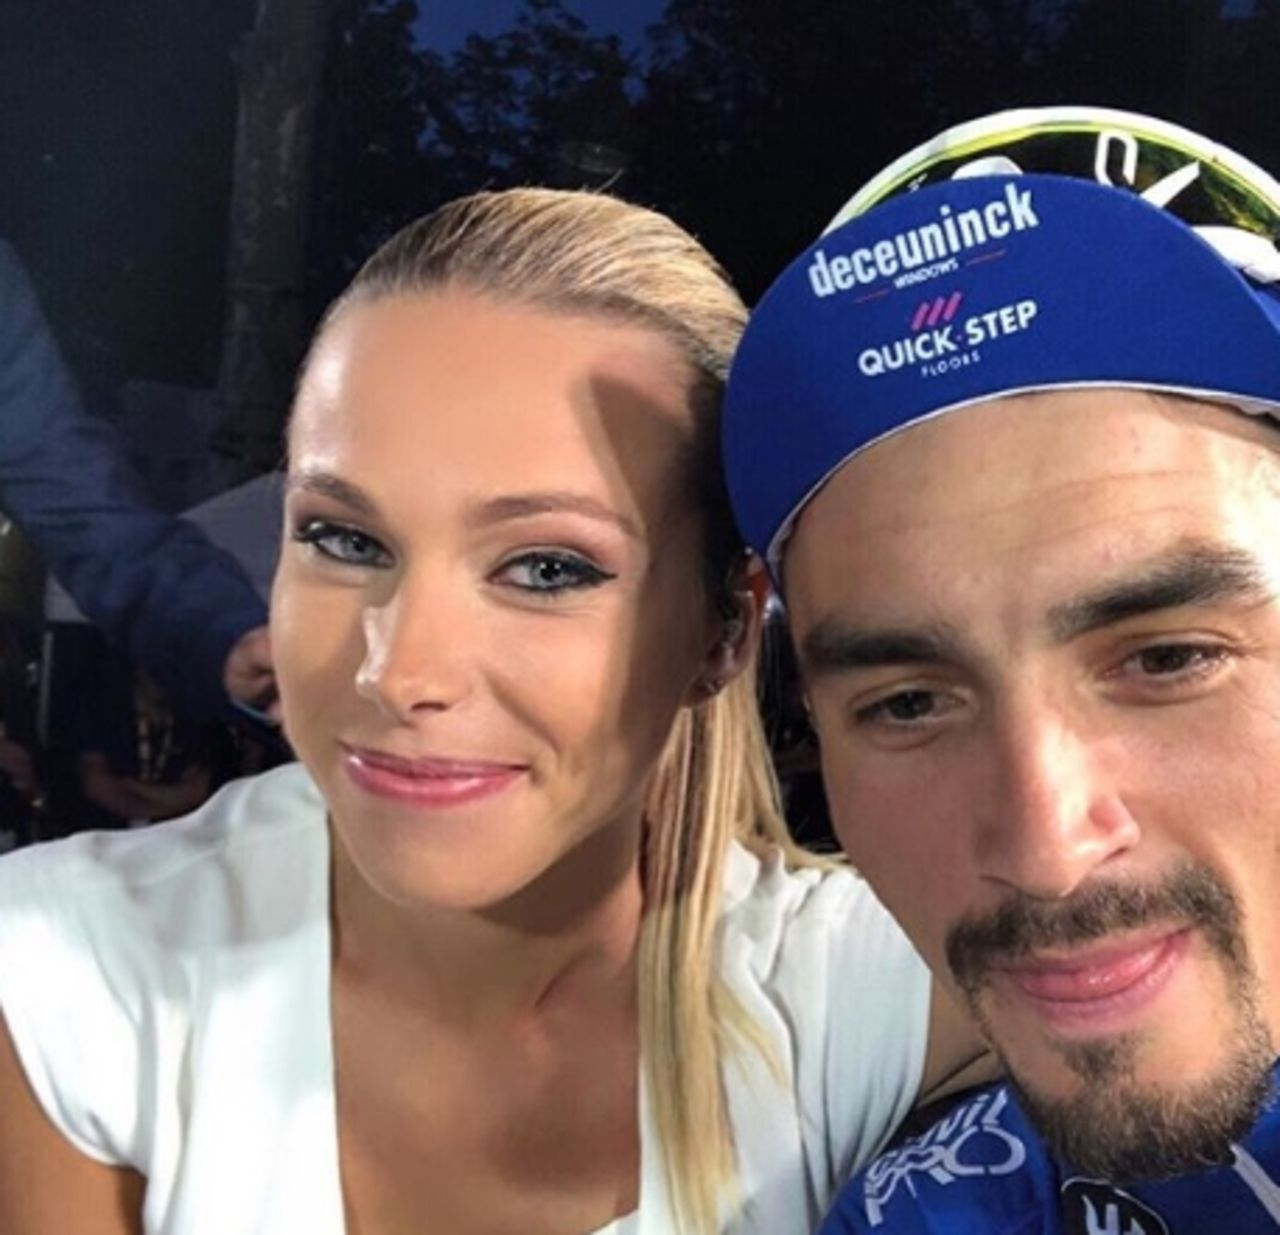 Cycling Julian Alaphilippe Confined With Marion Rousse Archyde